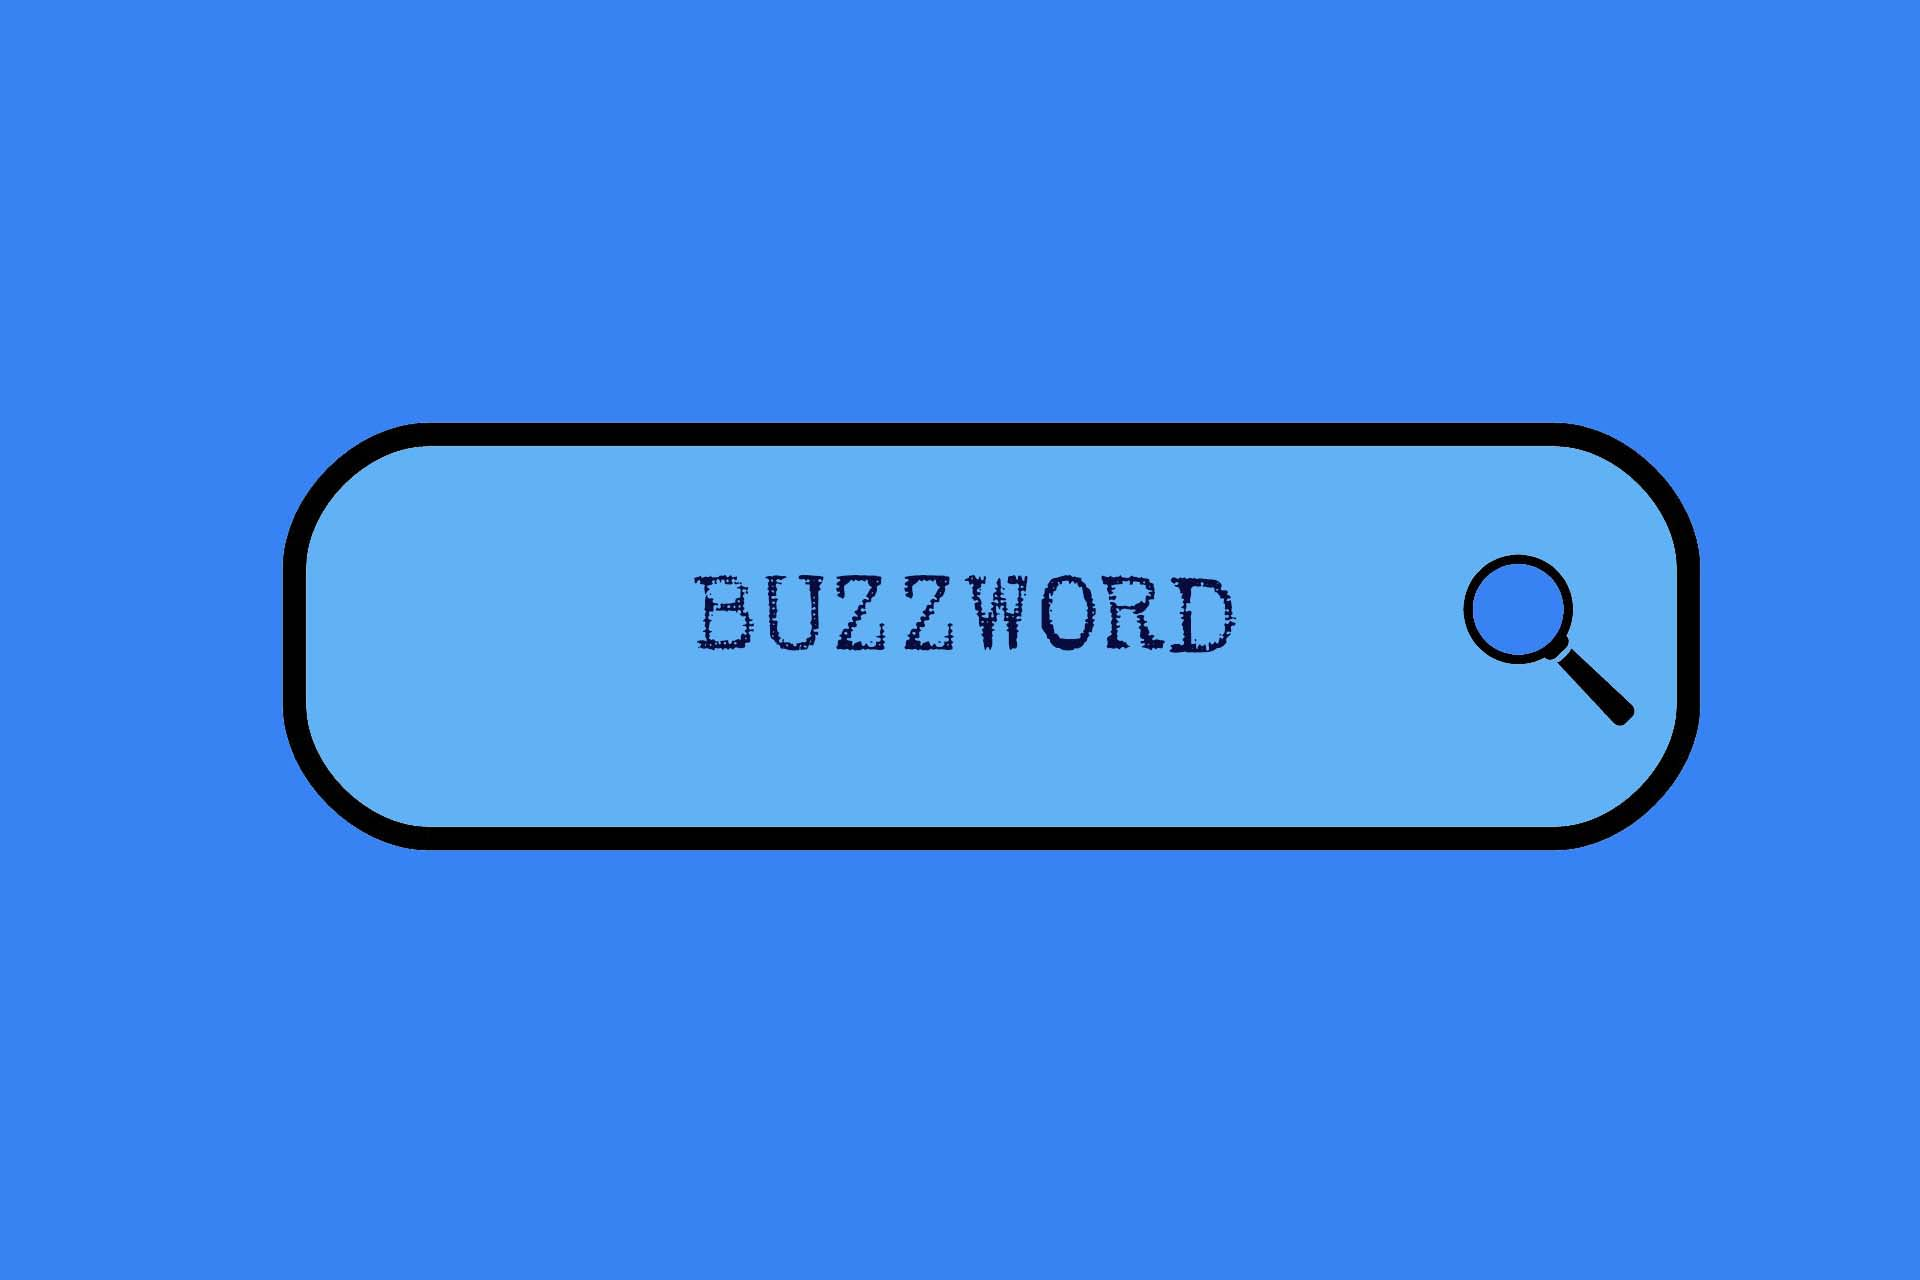 t2informatik Blog: A buzzword is a buzzword